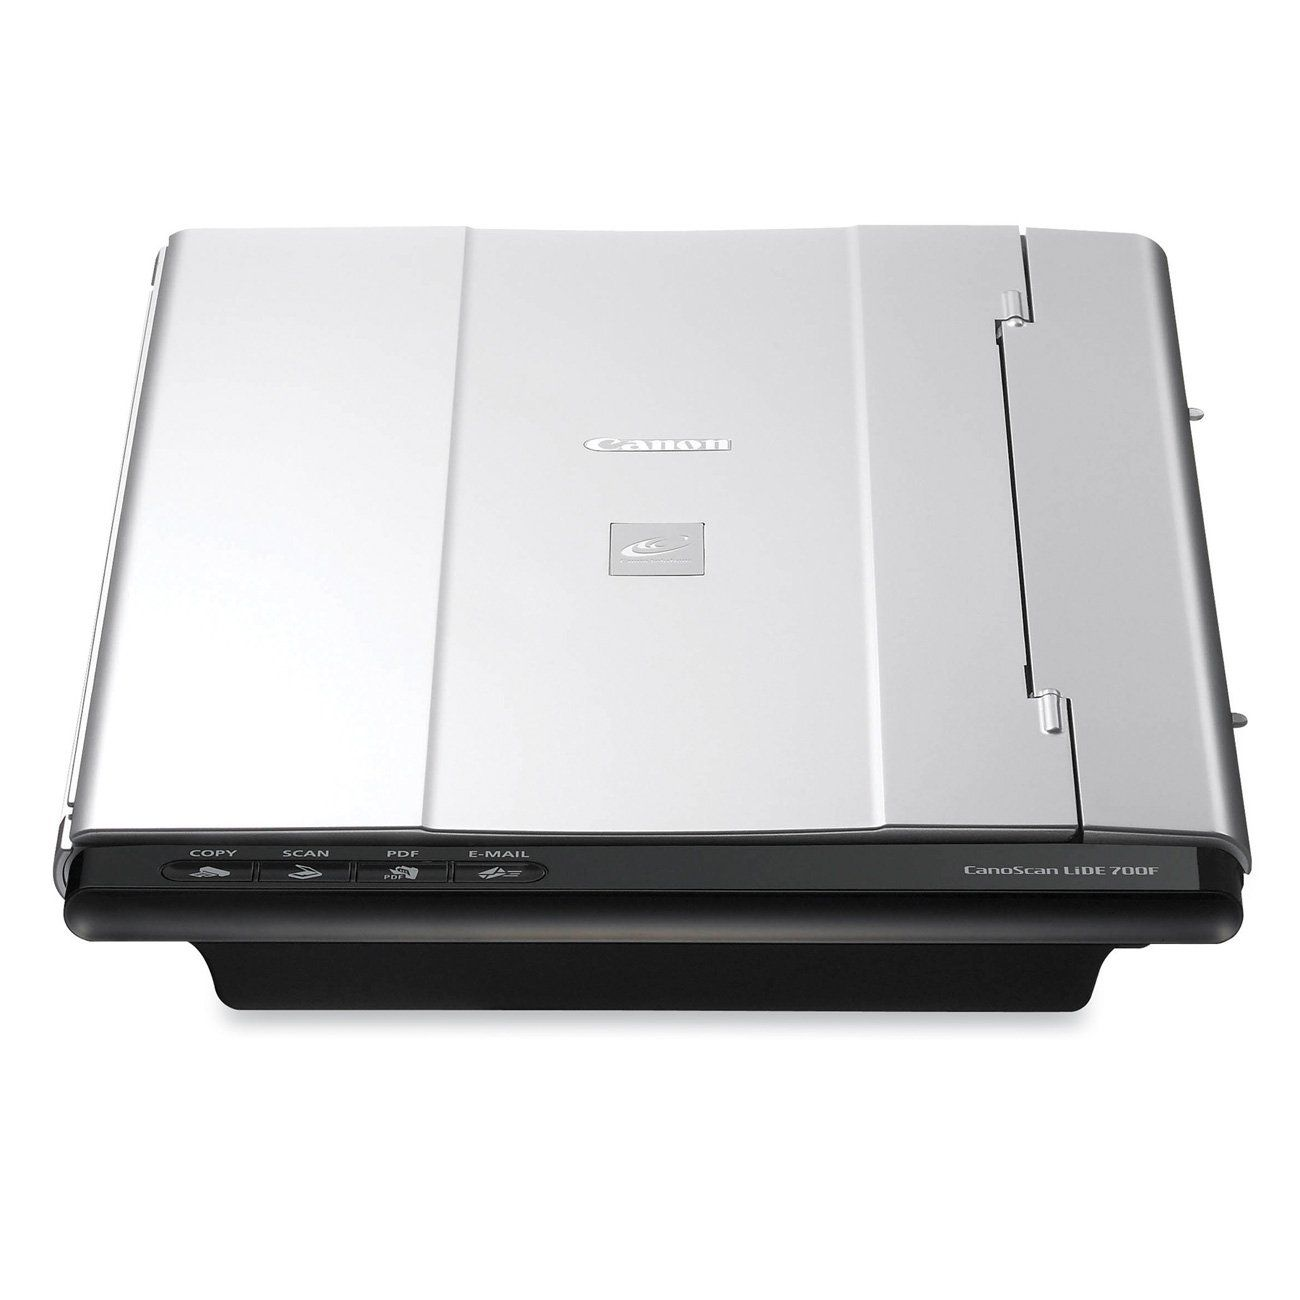 Canon CanoScan 3297B002 LiDE 700F Color Image Scanner. Auto Scan Mode: automatically adjusts settings by detecting what you are scanning. High speed letter size color scanning in approximately 12 seconds. Low Power Consumption; one USB cable for data and power. 9600 x 9600 Maximum Color Resolution with a Vivid 48 bit Color Depth. Four EZ Buttons Copy/Scan/E-mail/Create PDF Files Simply with The Push of a Button. 180 Degree Open/3 Way Position/Auto Scan Mode/Image Correction and More. One...